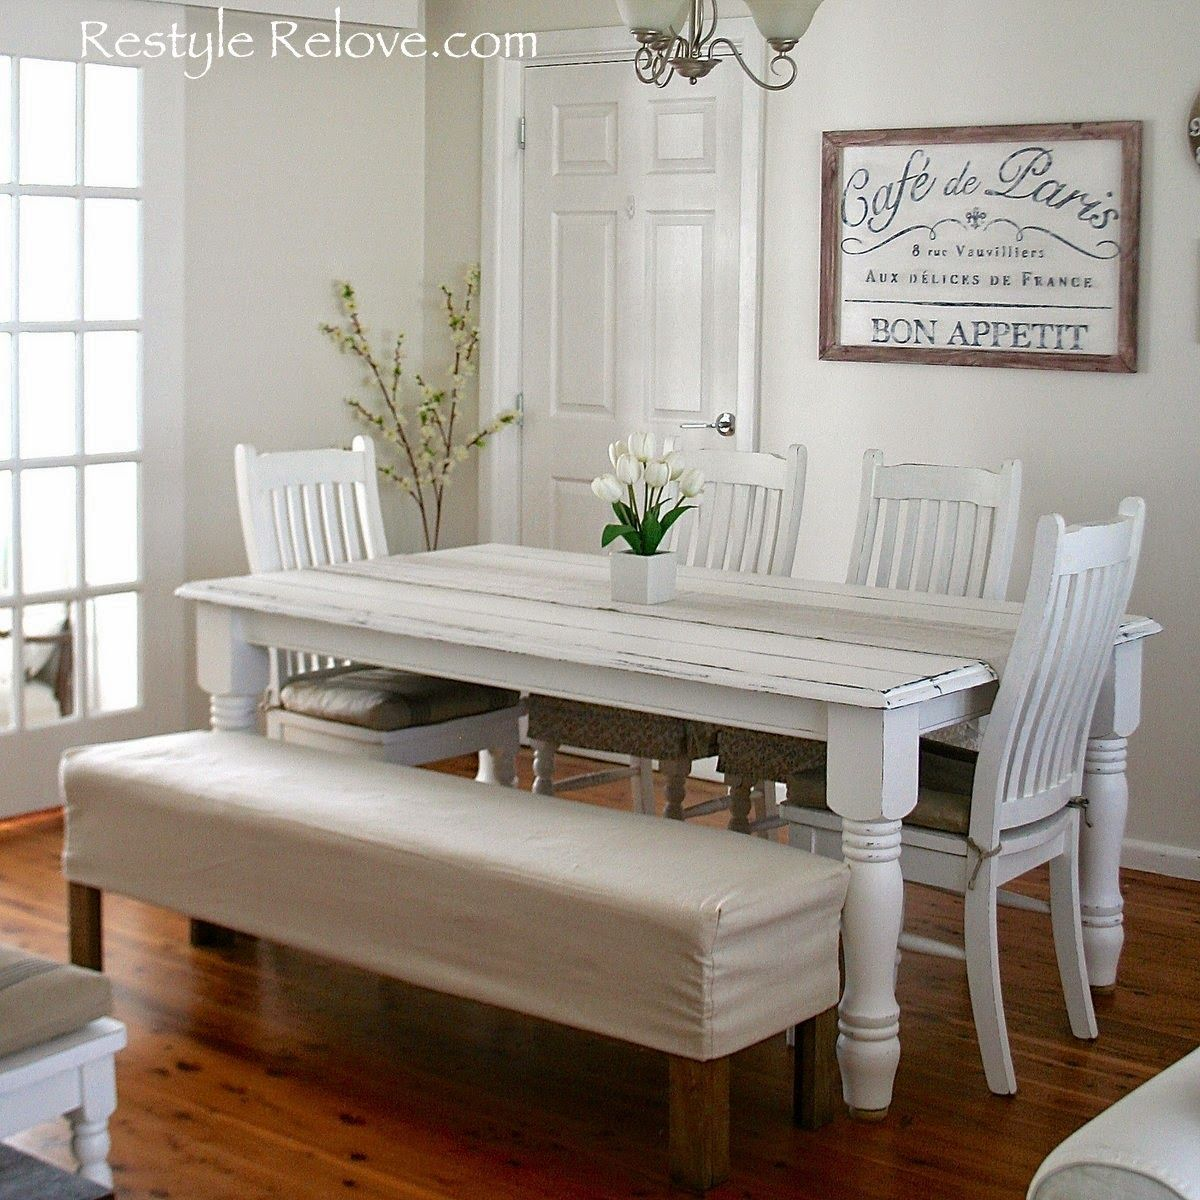 dining table bench seat. Restyle Relove: Padded Dining Room Bench Seat With Removable Washable Drop Cloth Cover Table